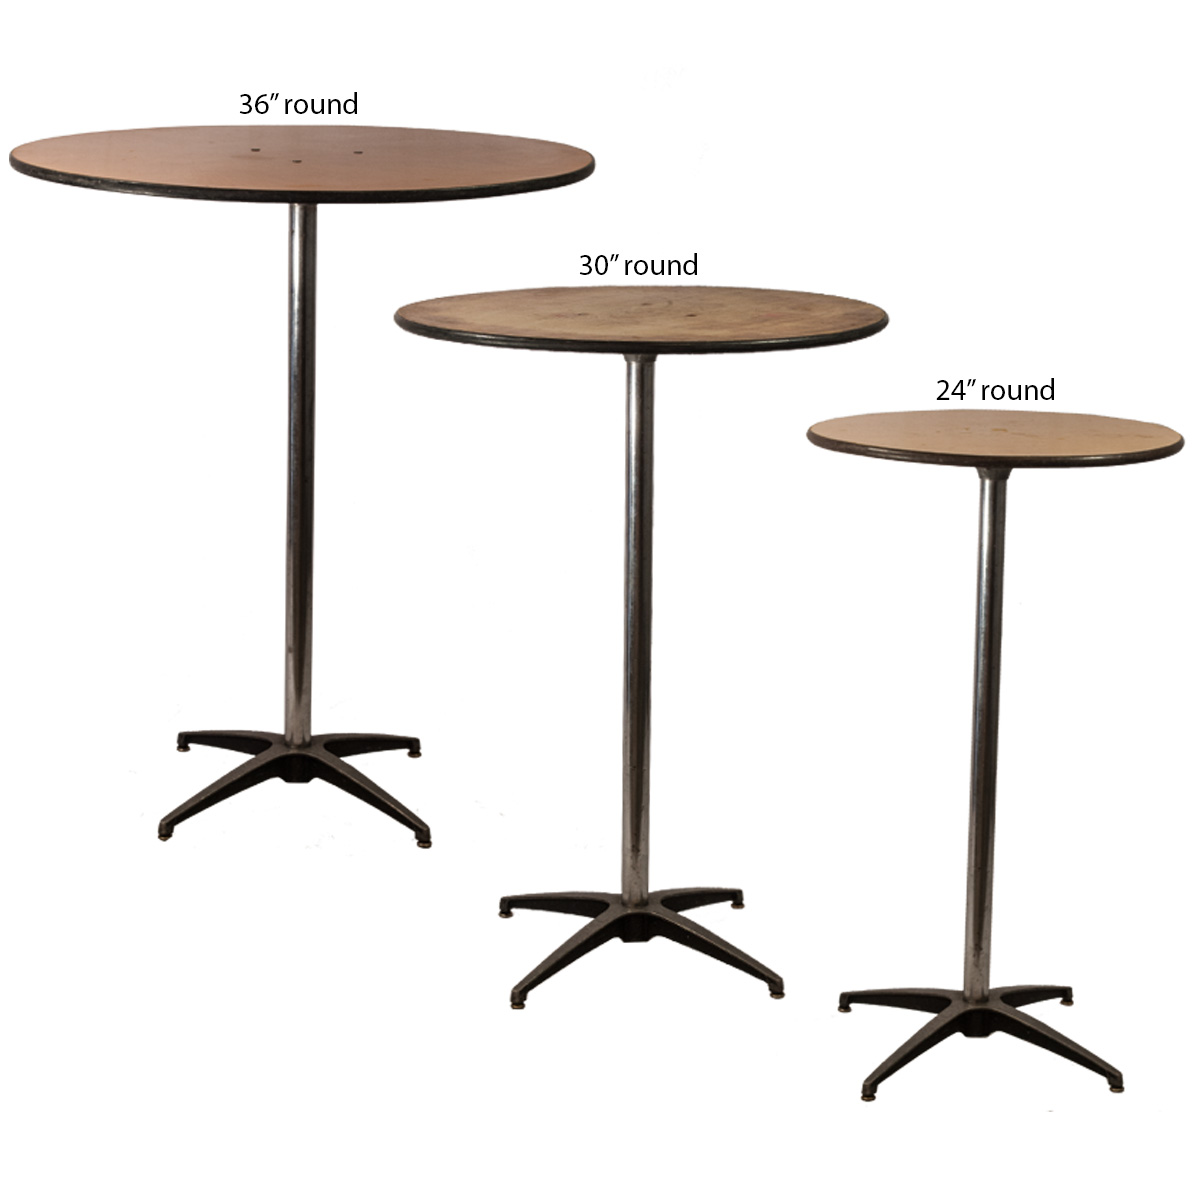 Cocktail table 30 round celebrations party rentals - Average coffee table height ...